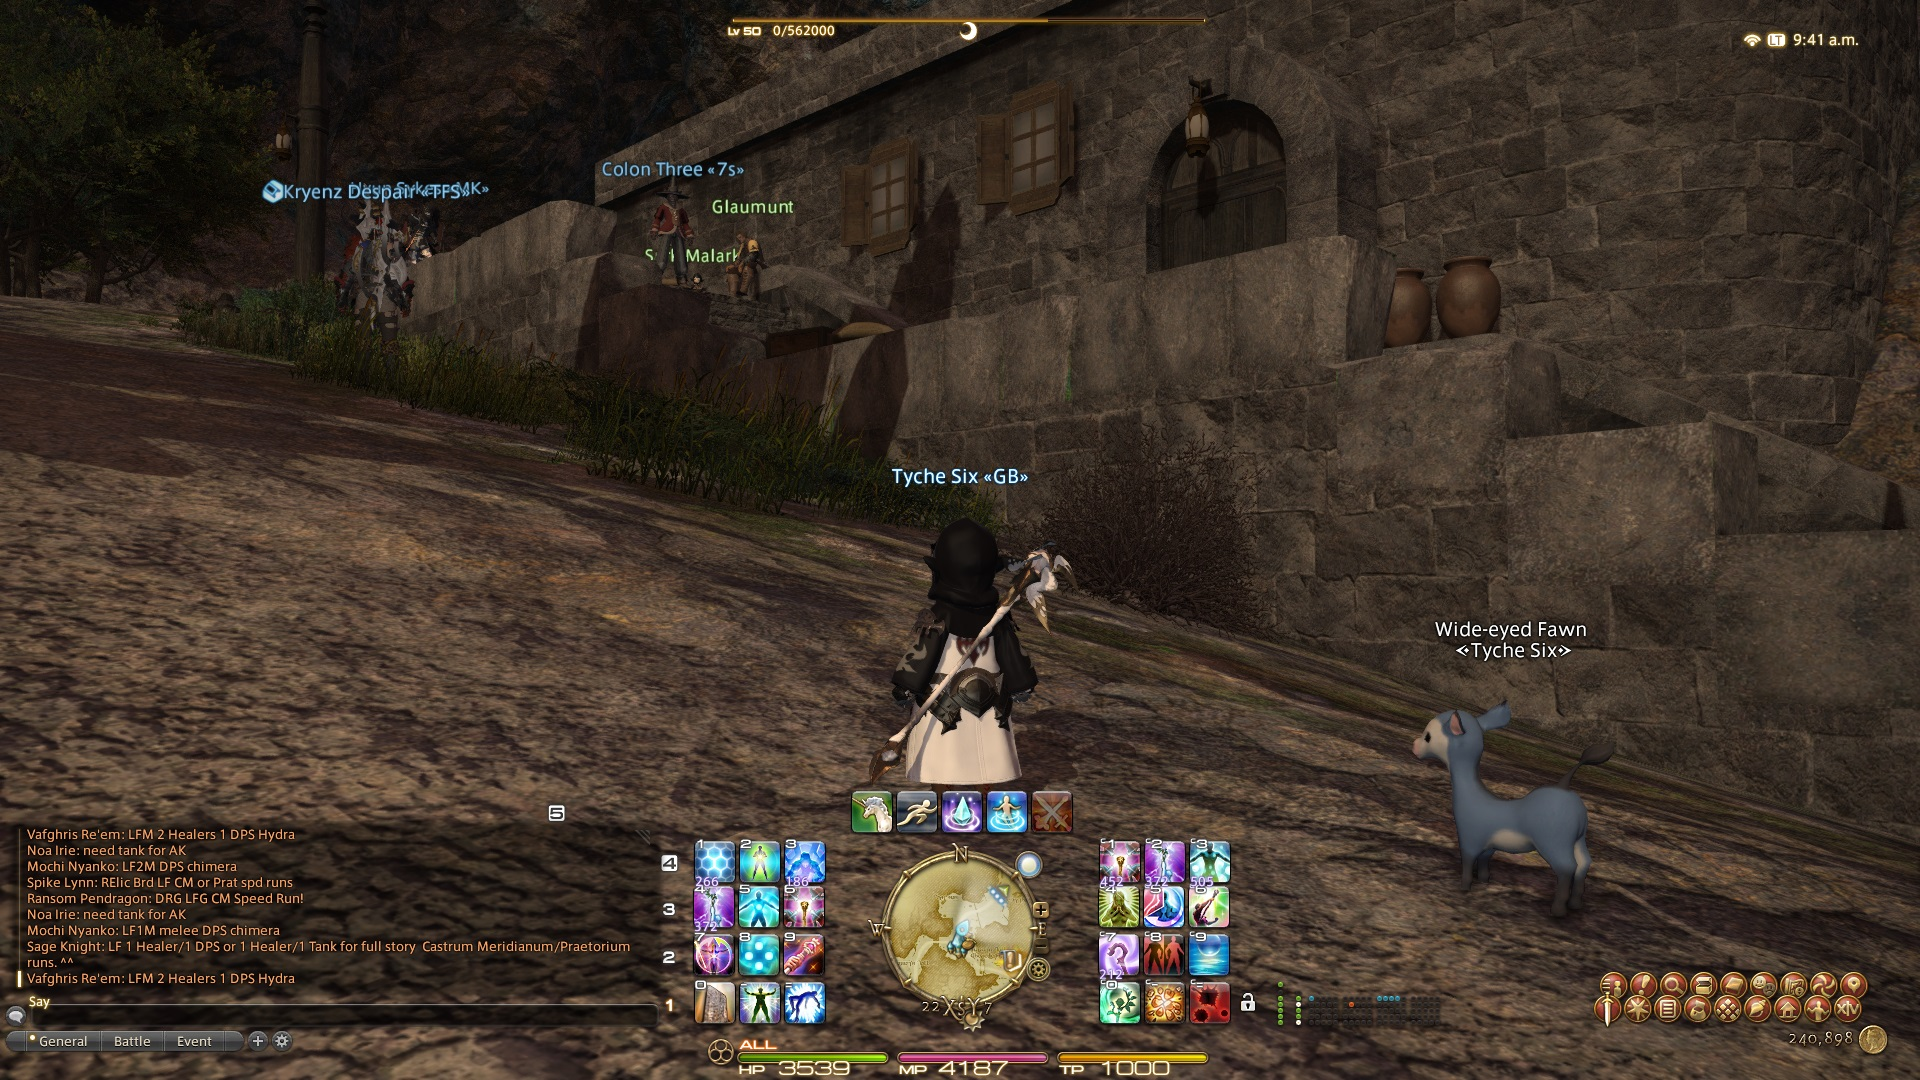 tyche ffxiv make petbar command toggle your visibility pictures remember anyone post know thread move huge discussion random look forward complaint